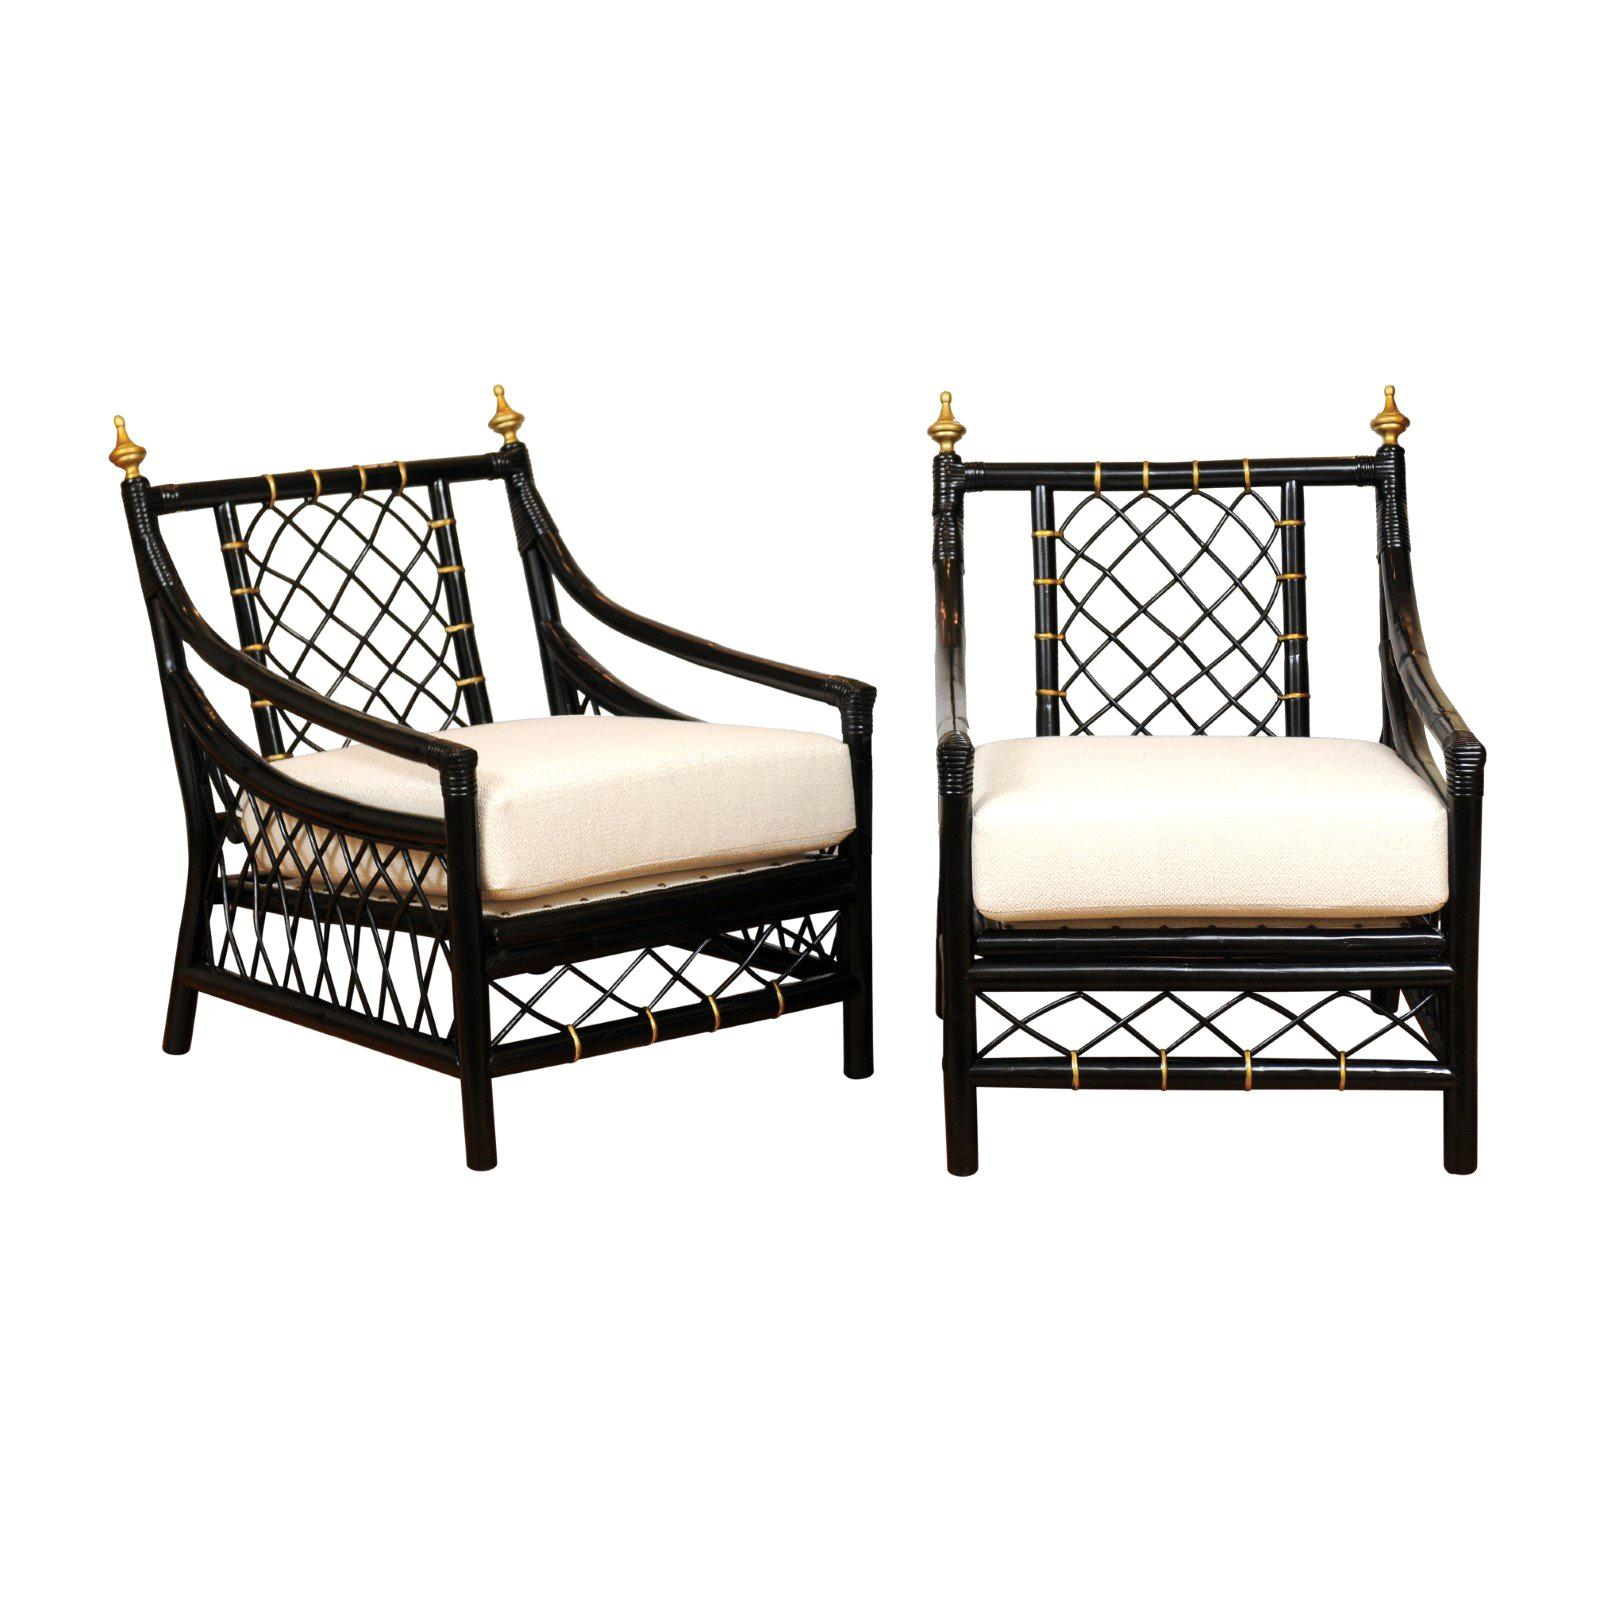 Elegant Restored Pair of Throne Loungers by Willow and Reed, circa 1955